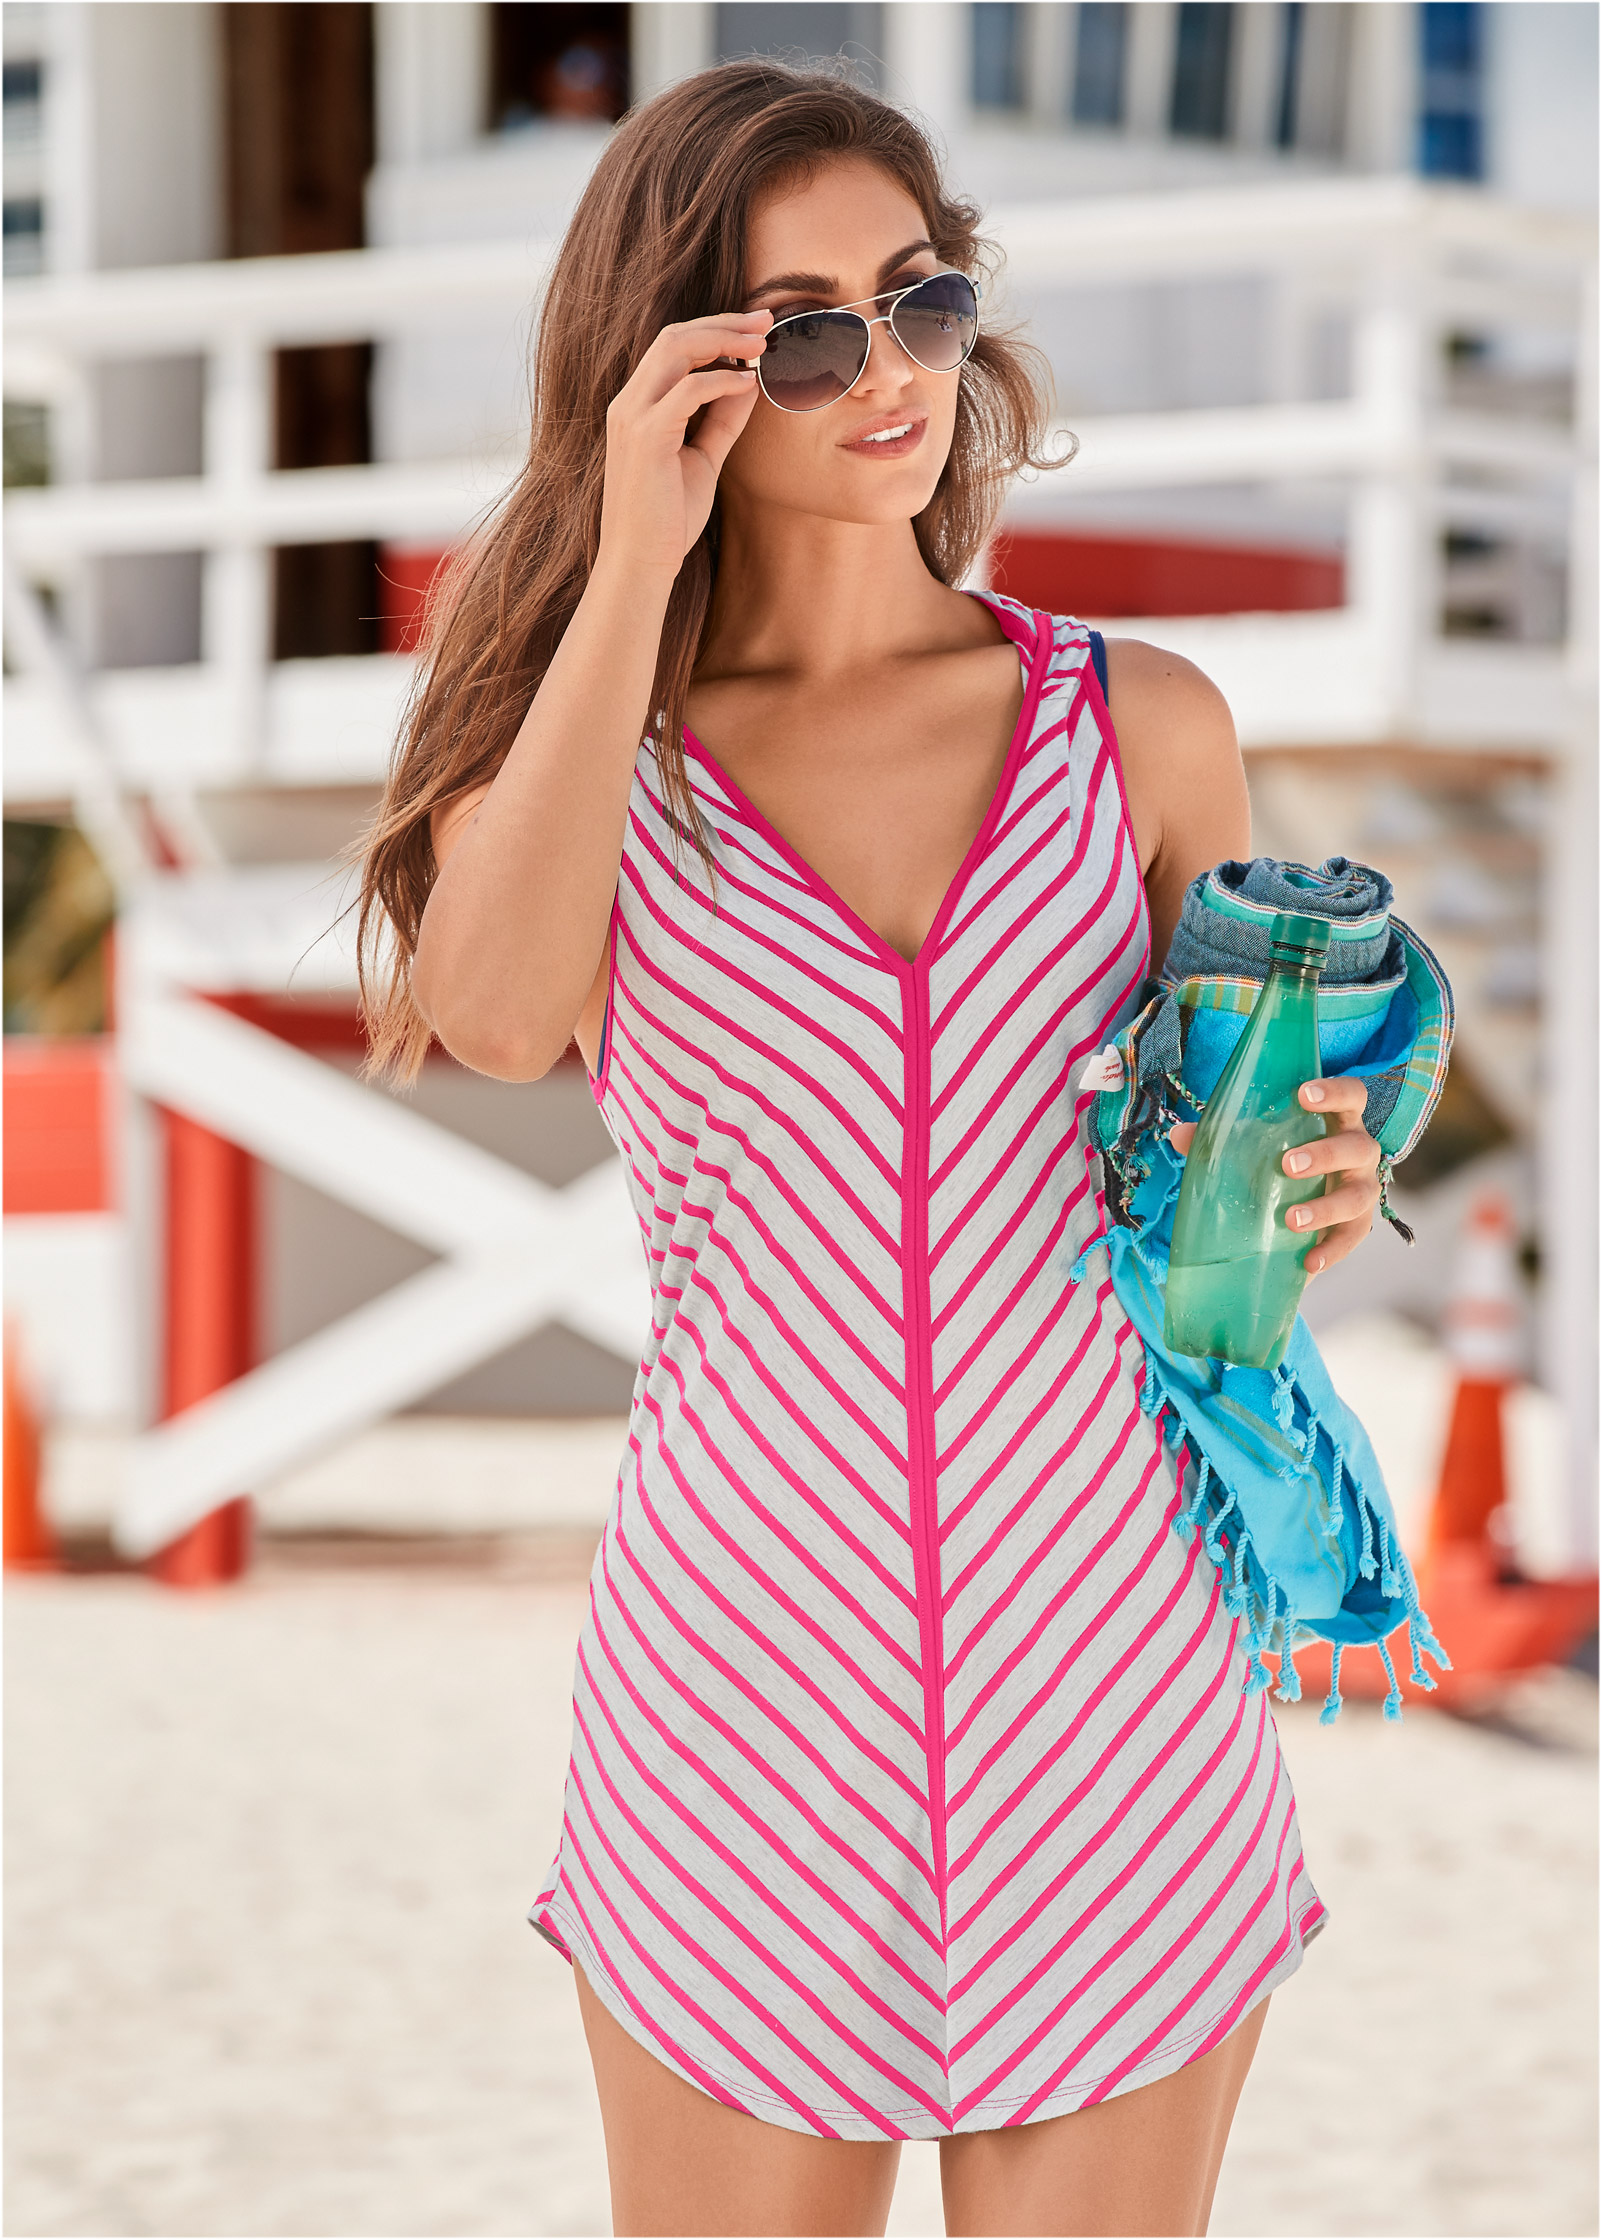 Custom Pattern Plus Size Braided Dress Swimsuit Cover Up for Women